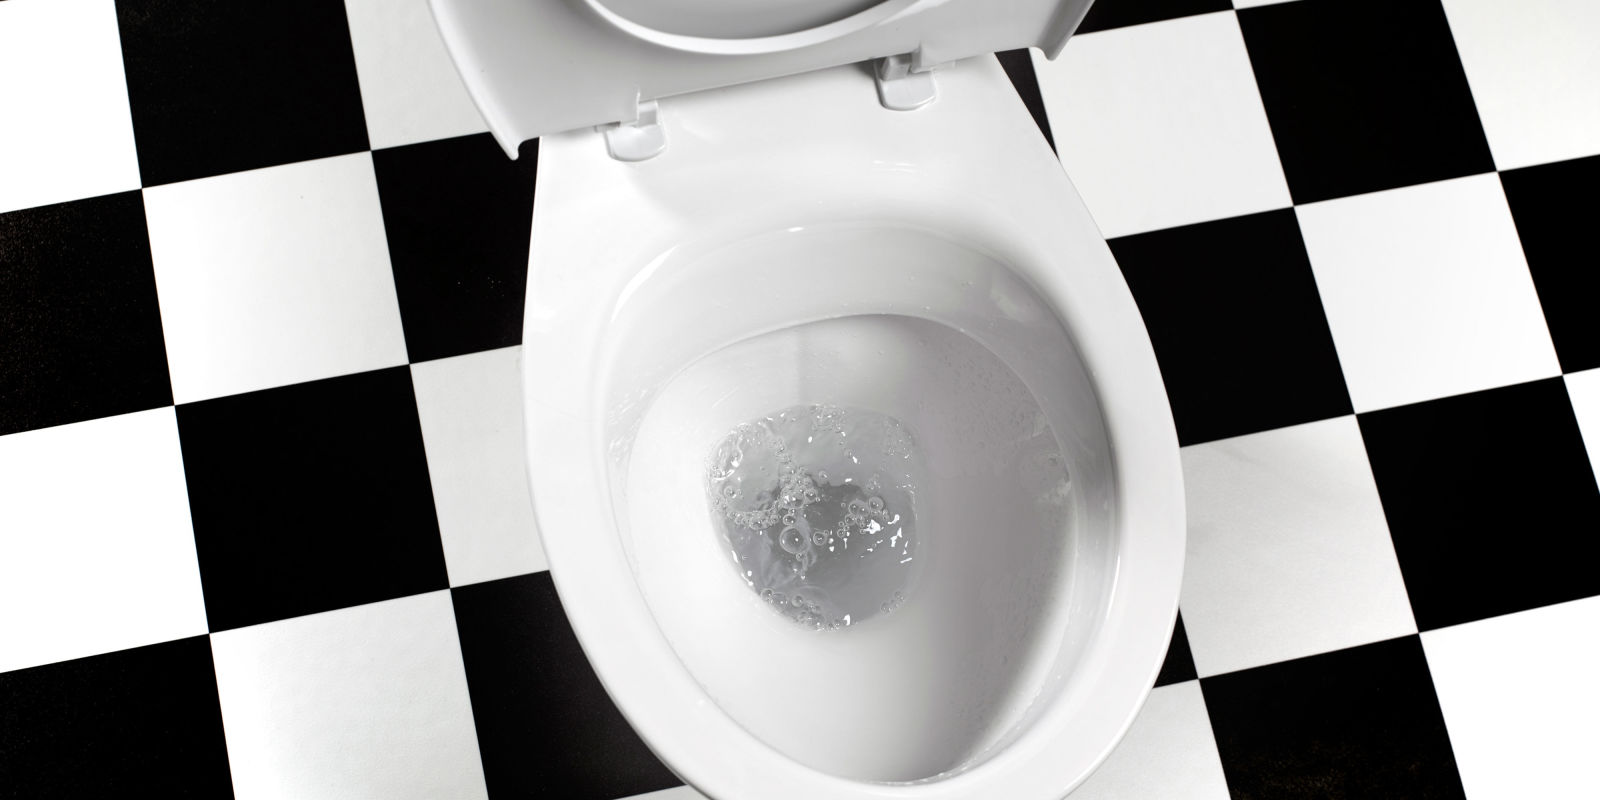 Behavioural Therapy For Urinary Incontinence - White toilet with black seat